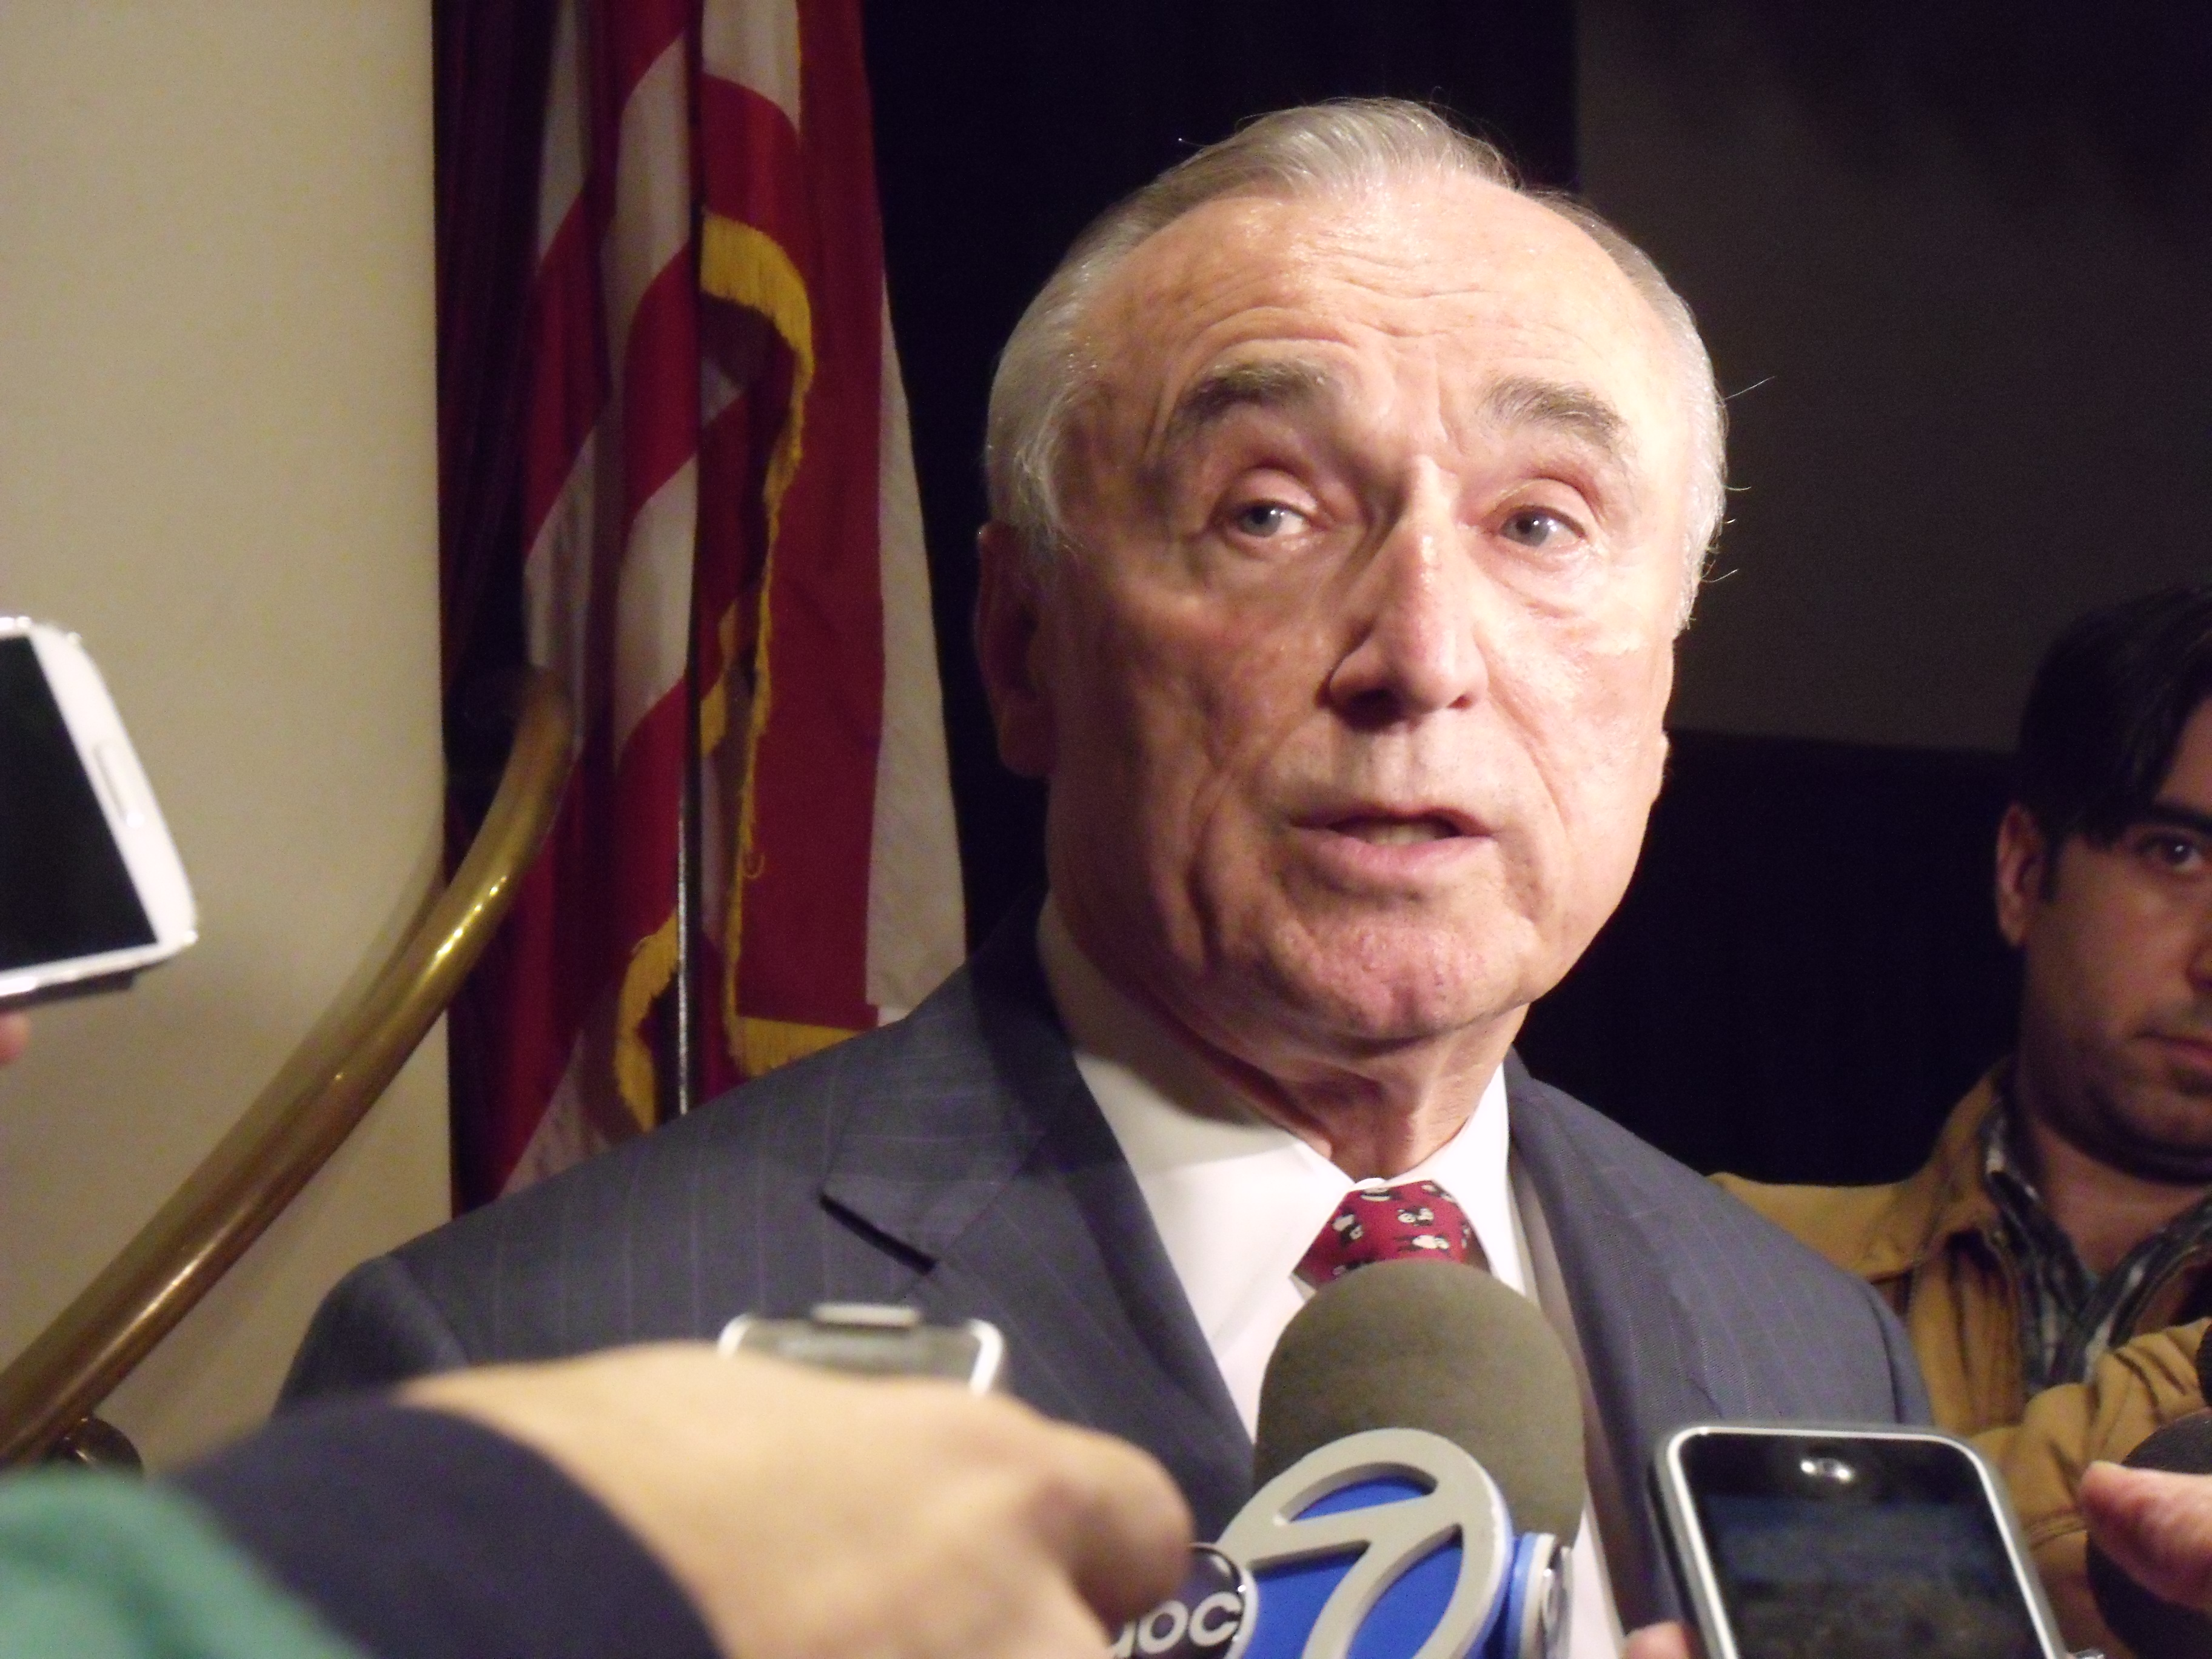 Police Commissioner Bill Bratton speaking to reporters tonight about a police shooting. (Photo: Jillian Jorgensen)